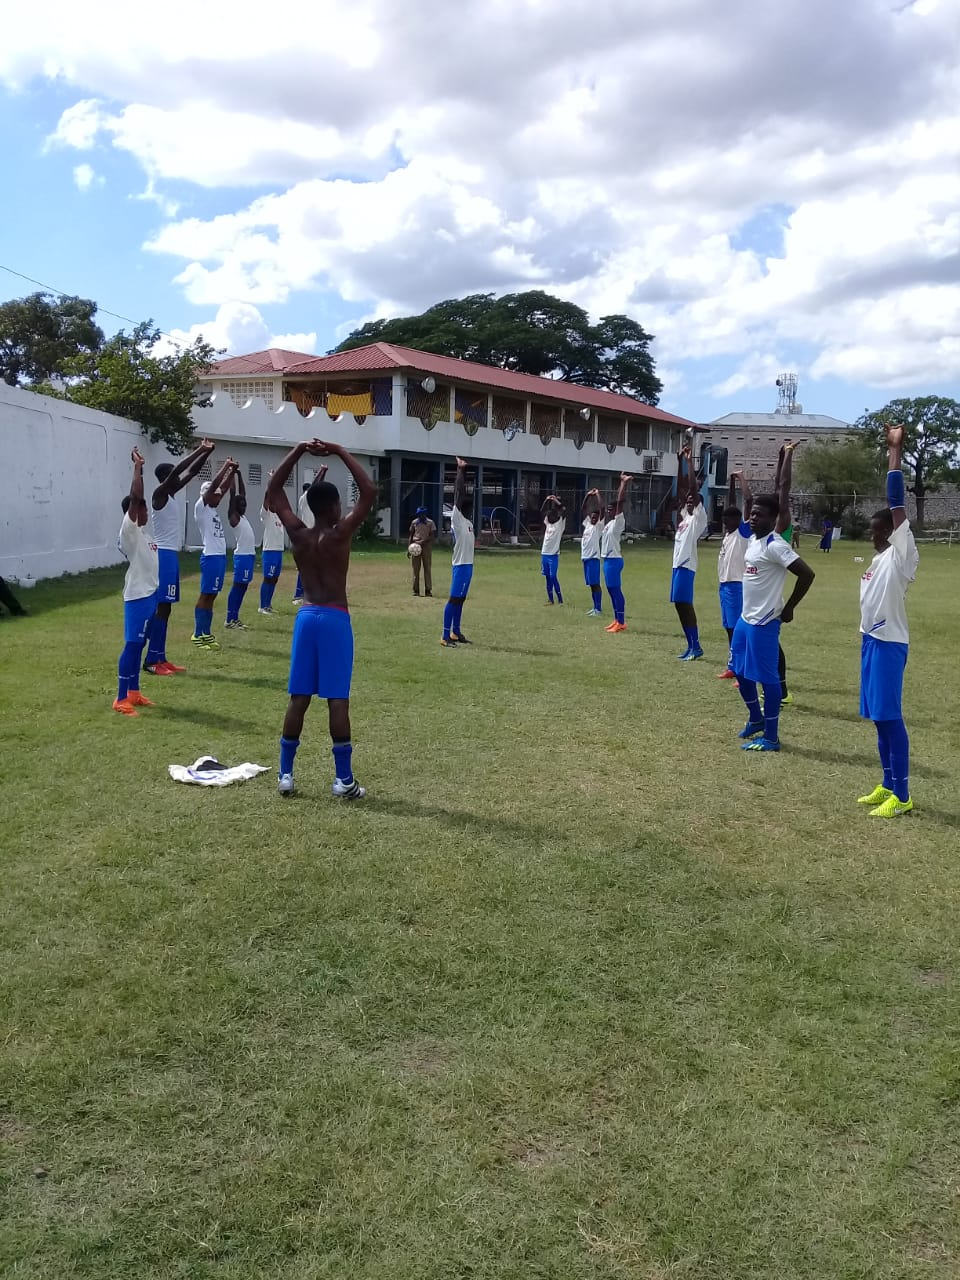 Cumberland warming up for their match against Hydel